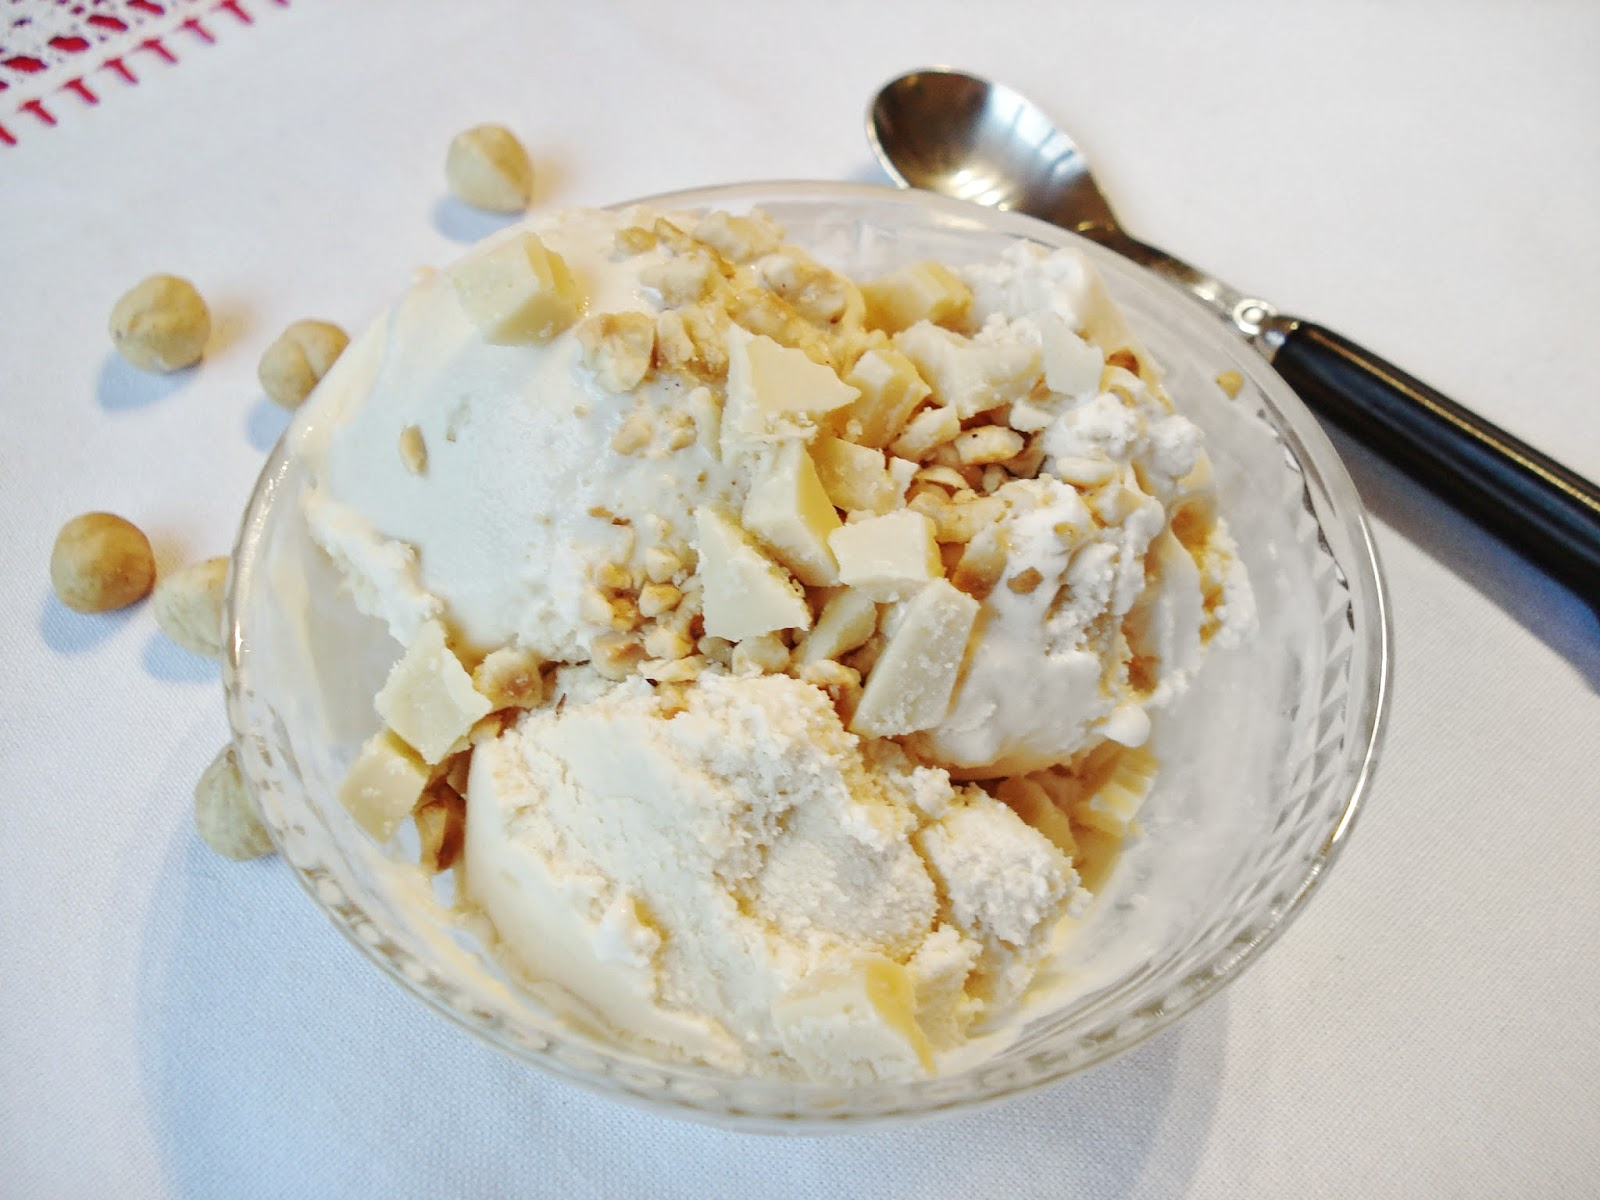 Gluten Free SCD and Veggie: Coffee Ice Cream with Hazelnuts ...